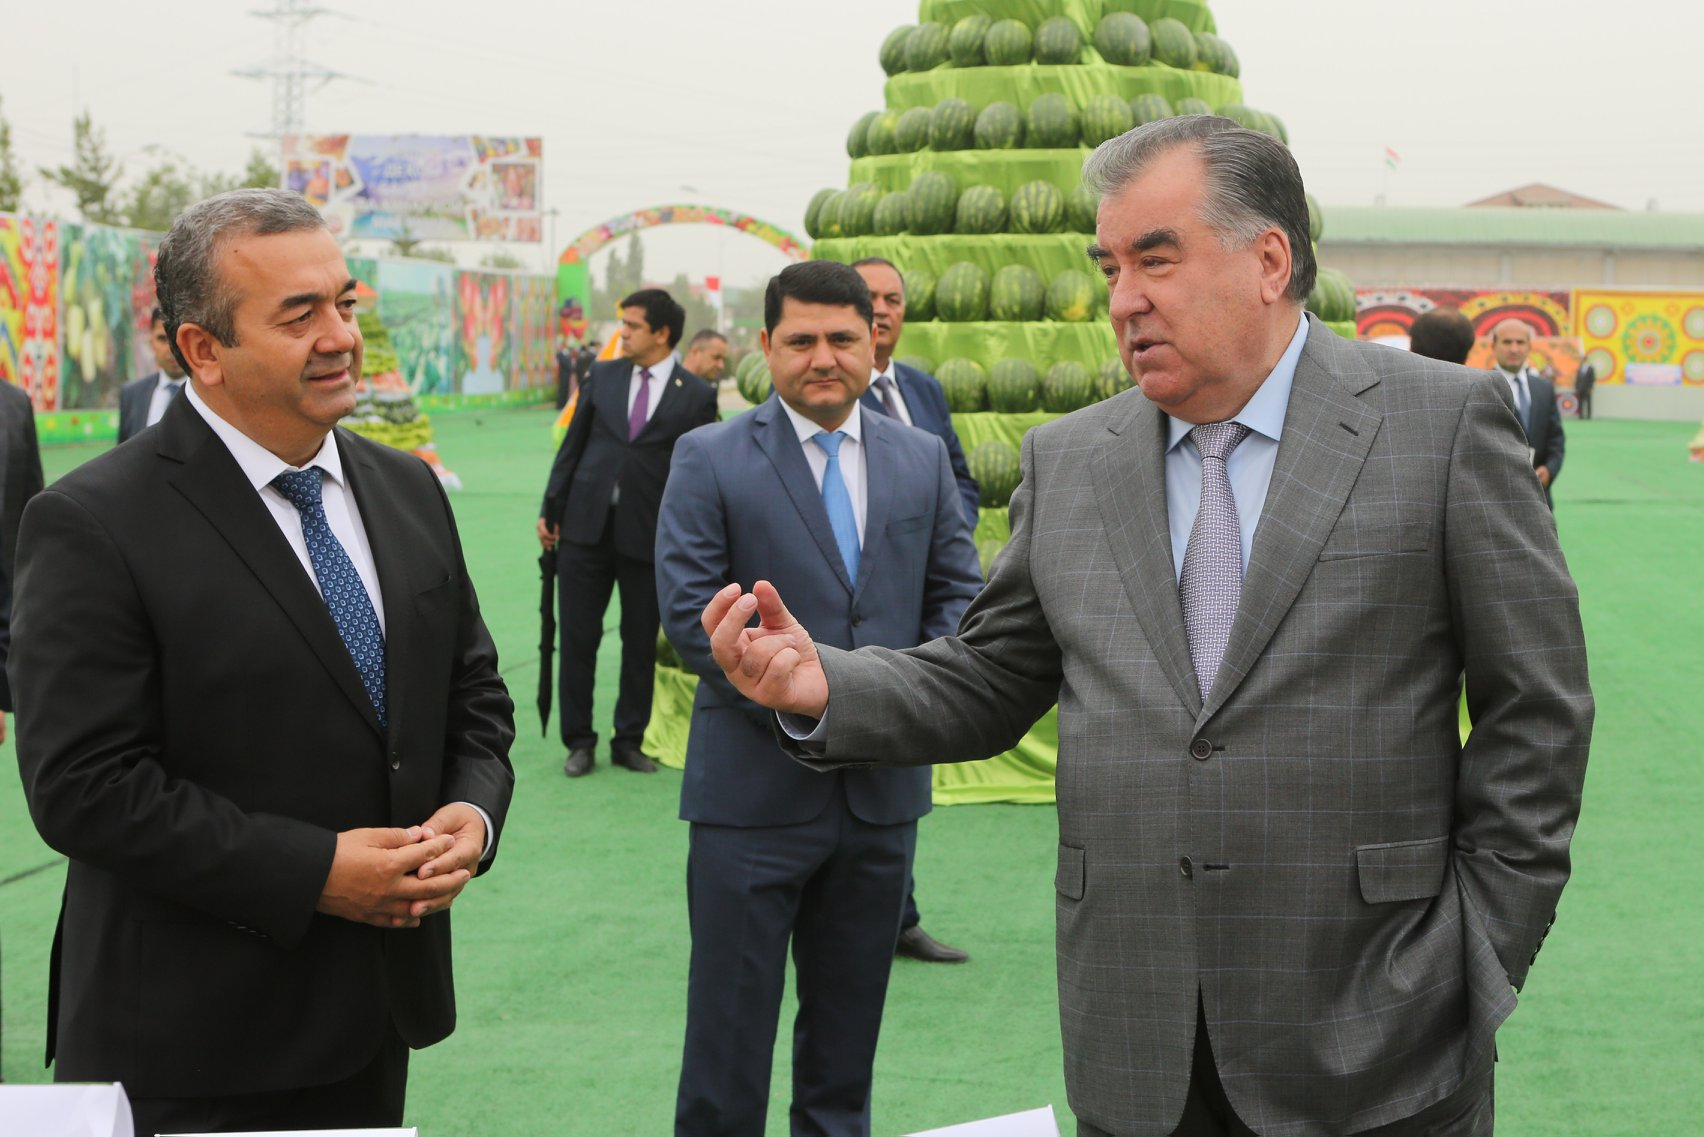 Internet is bad, m'kay: Rahmon, right, at a vegetable fair. (Photo: Tajik presidential administration)